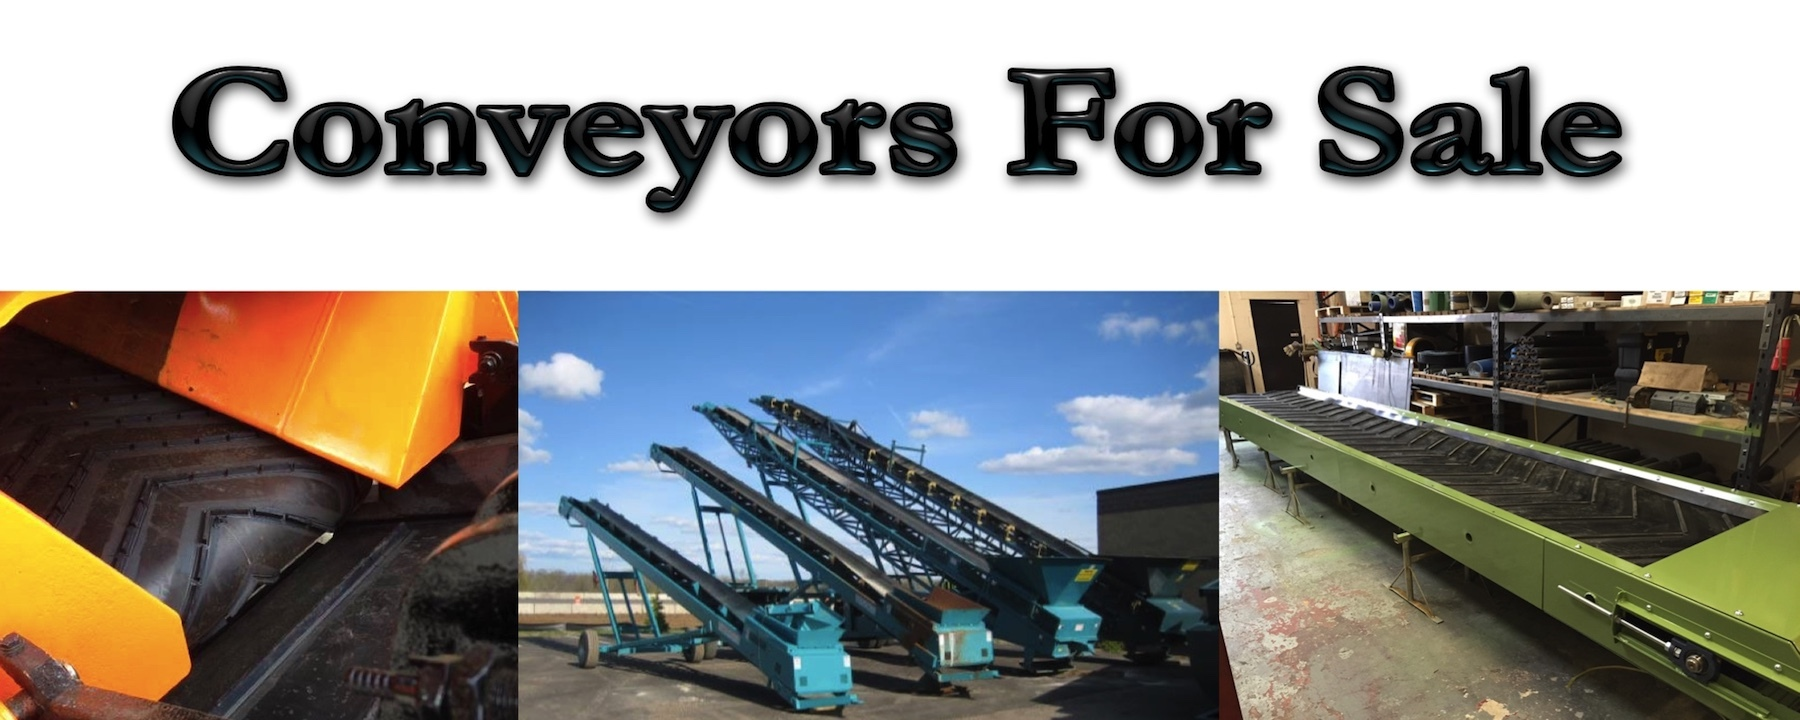 conveyors_for_sale2